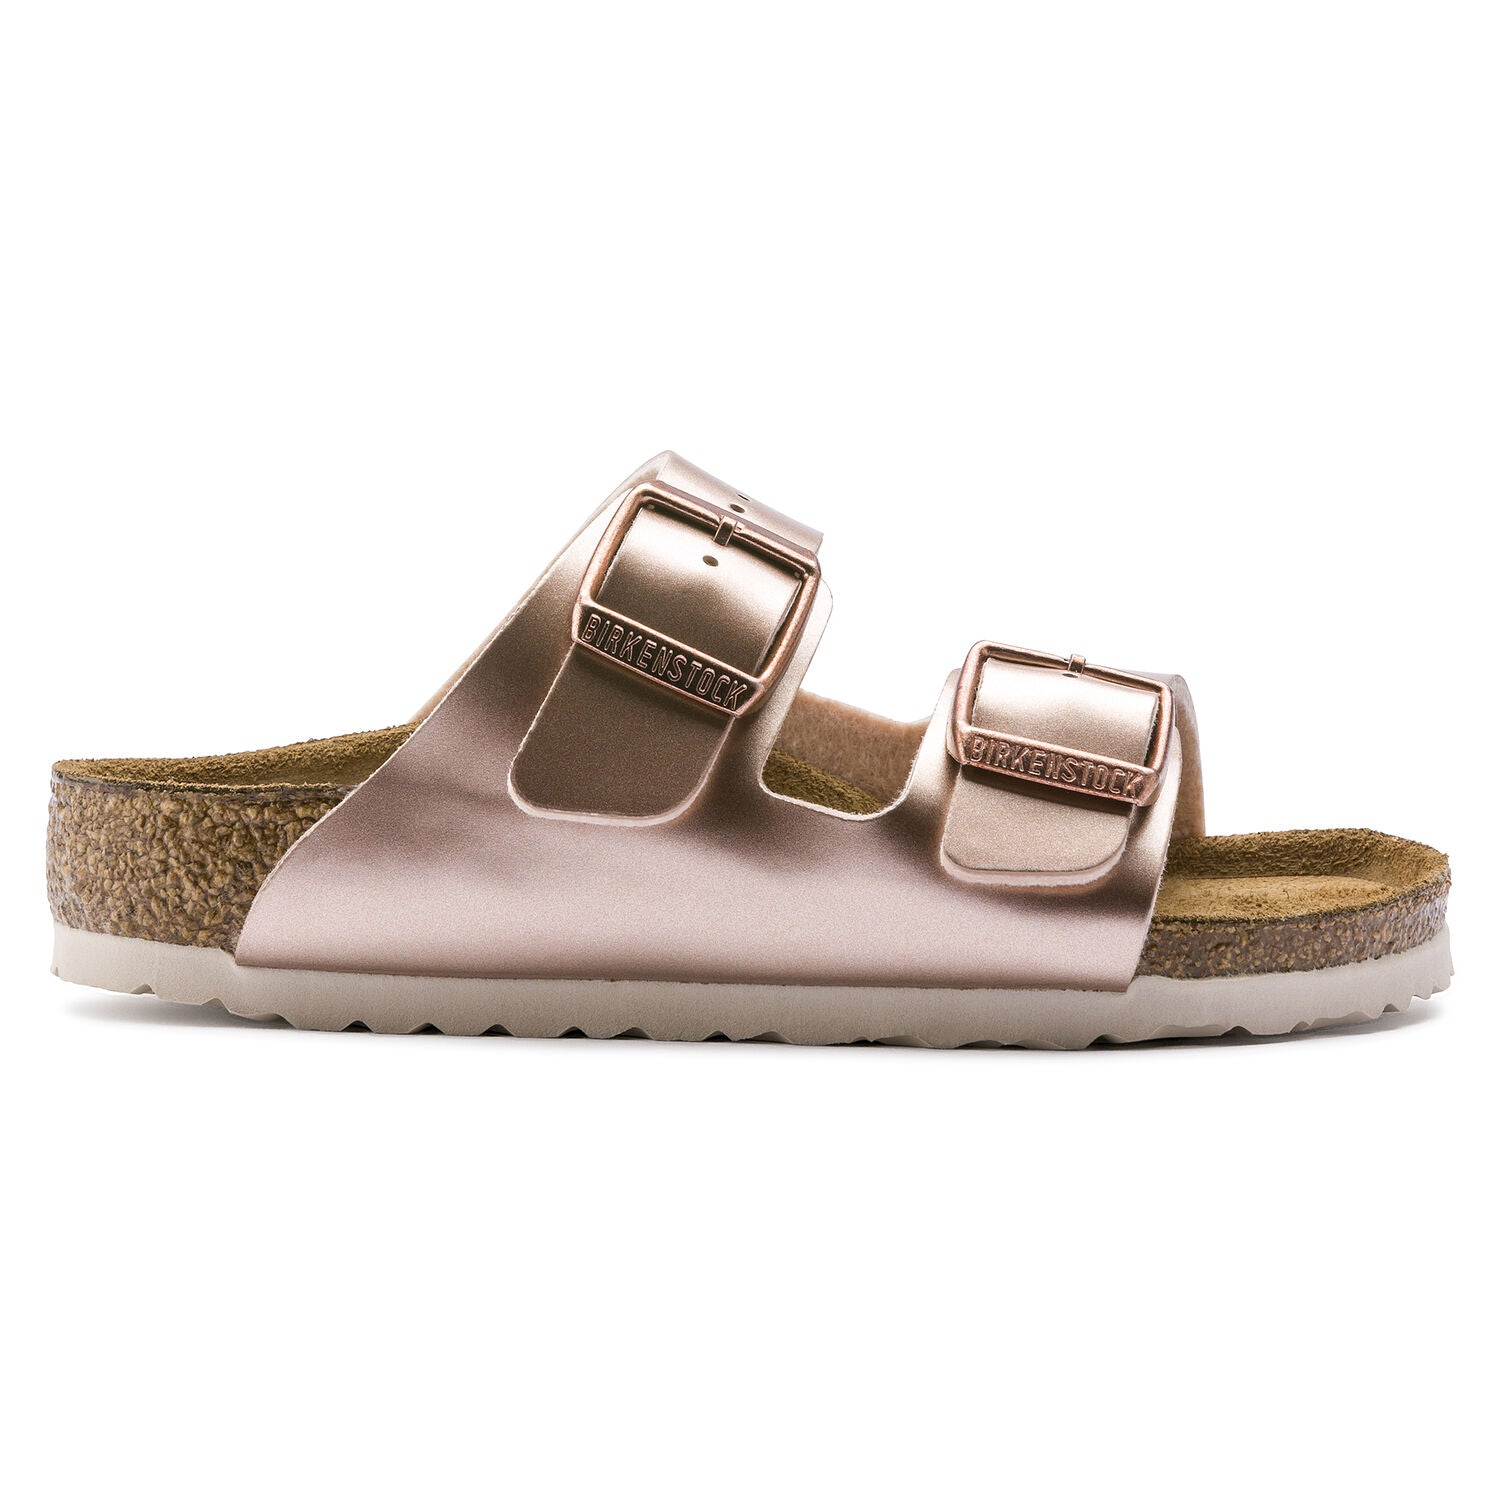 BIRKENSTOCK - KIDS ARIZONA IN METALLIC COPPER LEATHER